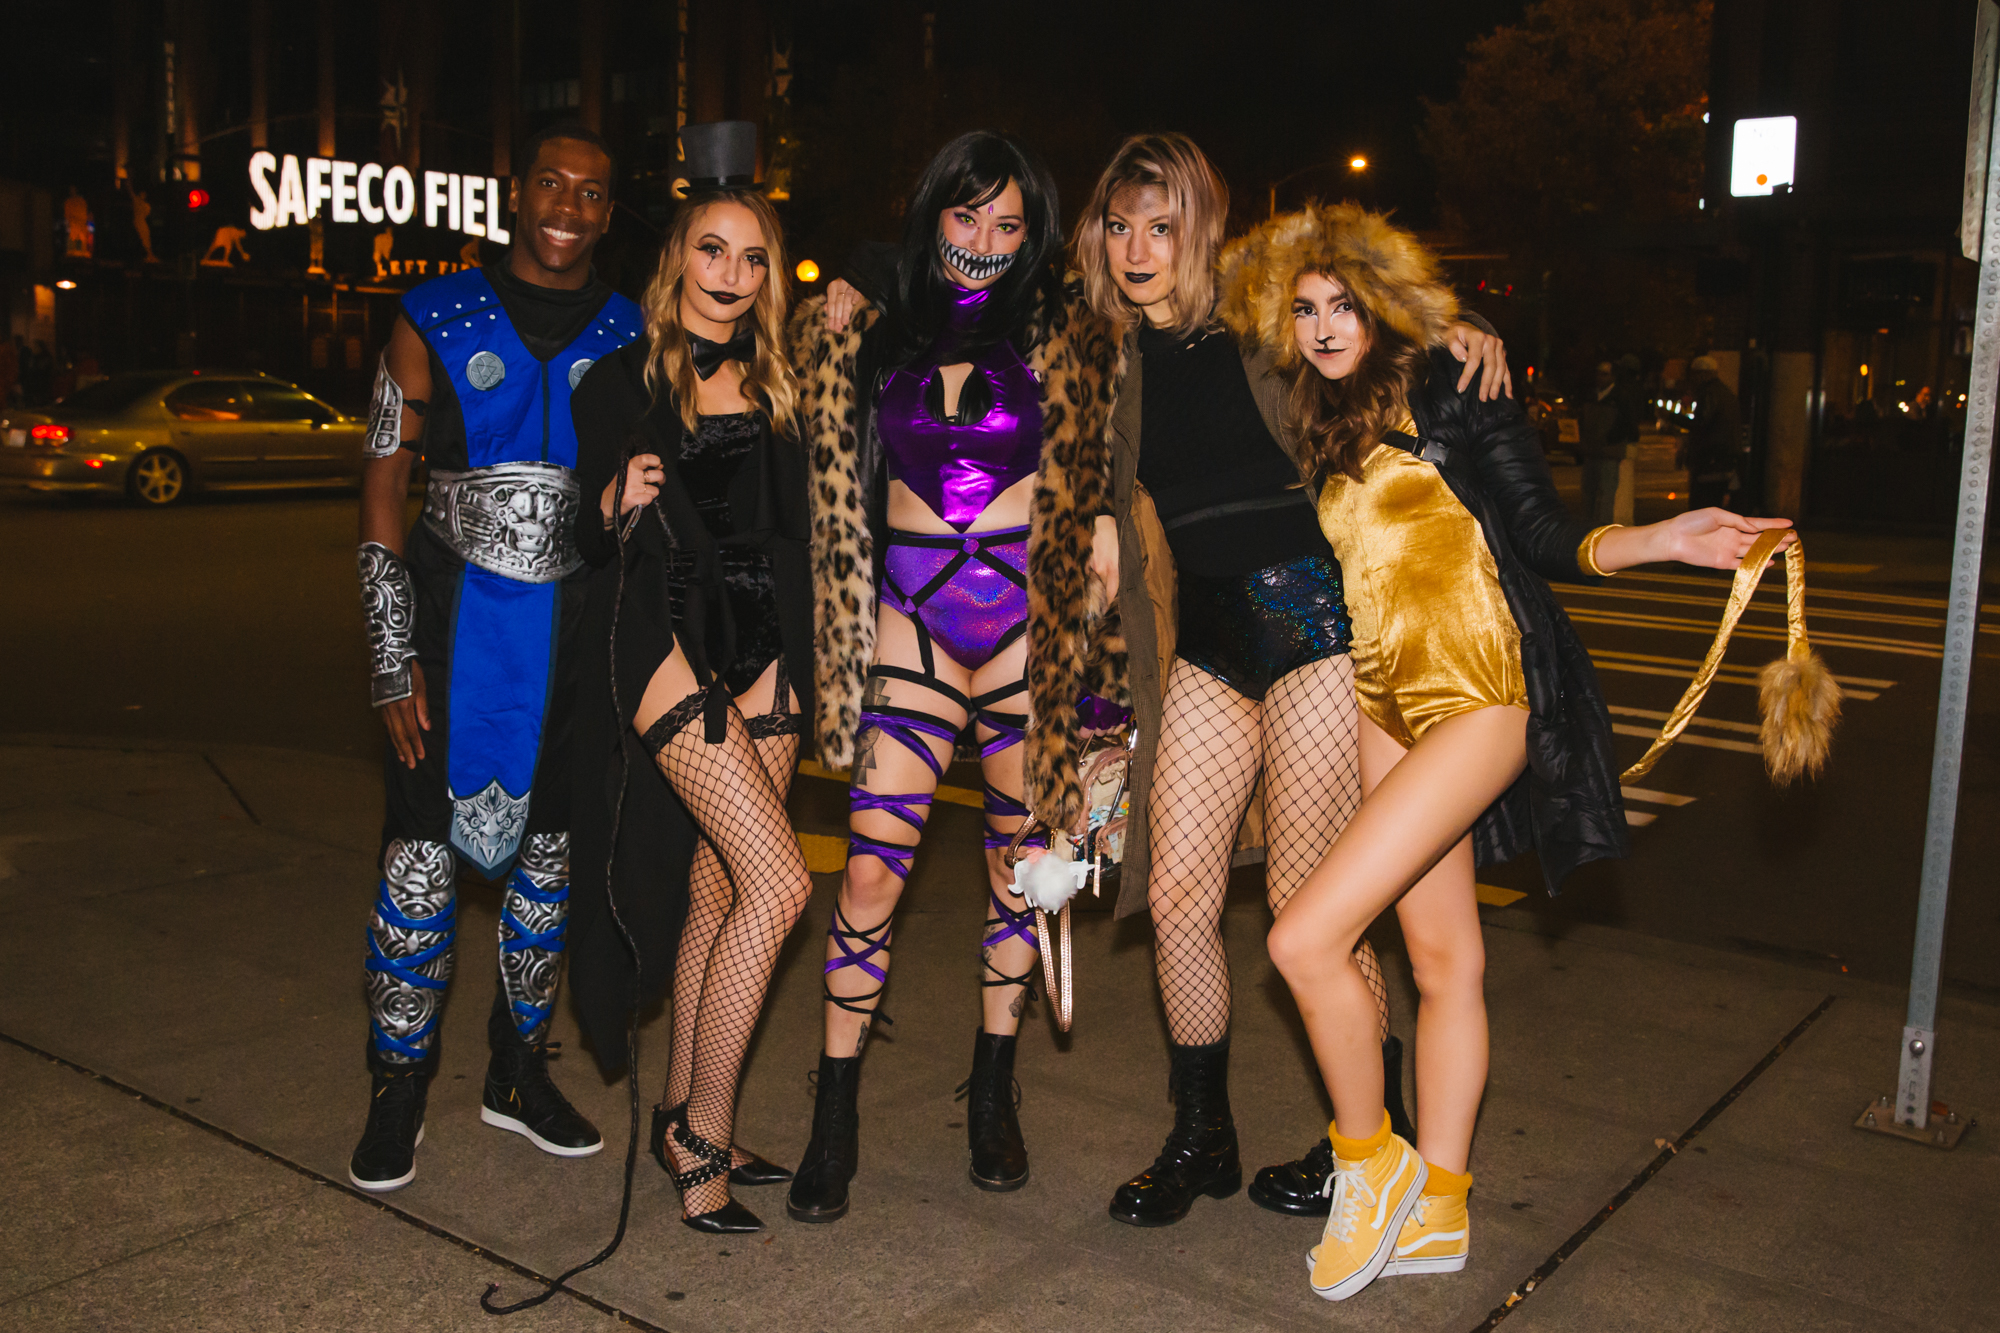 #3. FreakNight:{ }Thousands of people came to the WaMu Theater for the annual FreakNight Electronic Music Festival on Friday night, October 26 2018. The event brings out wildly costumed fans who dance the night away, go on rides and play carnival games. (Image: Sunita Martini / Seattle Refined)